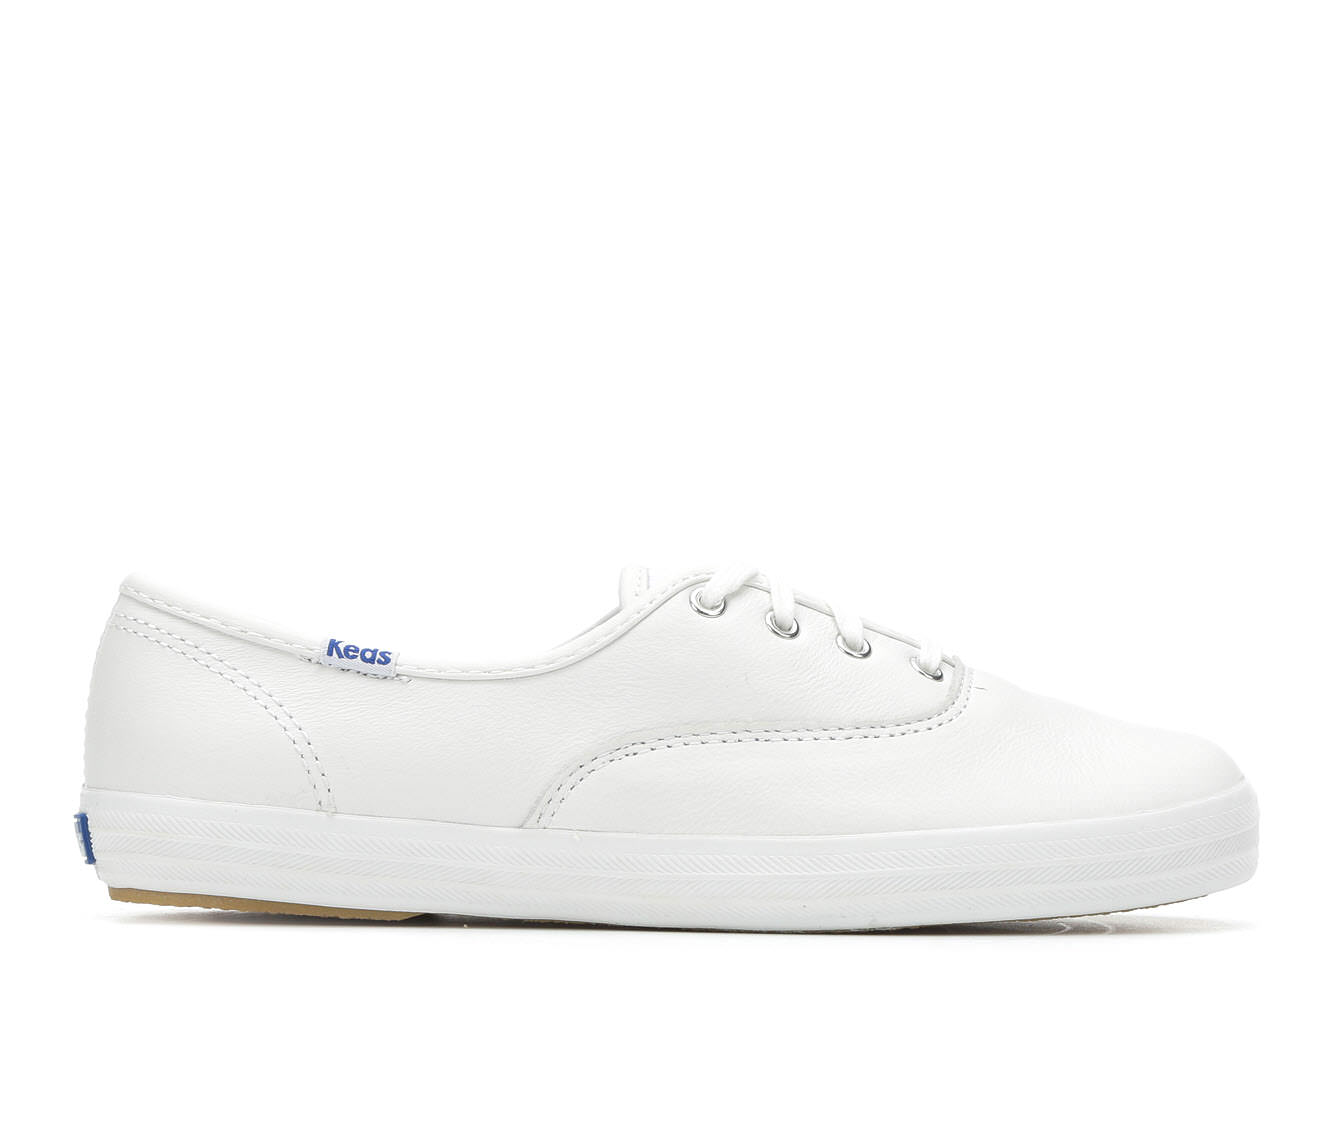 Keds Champion Leather Oxford Women's Shoe (White Leather)